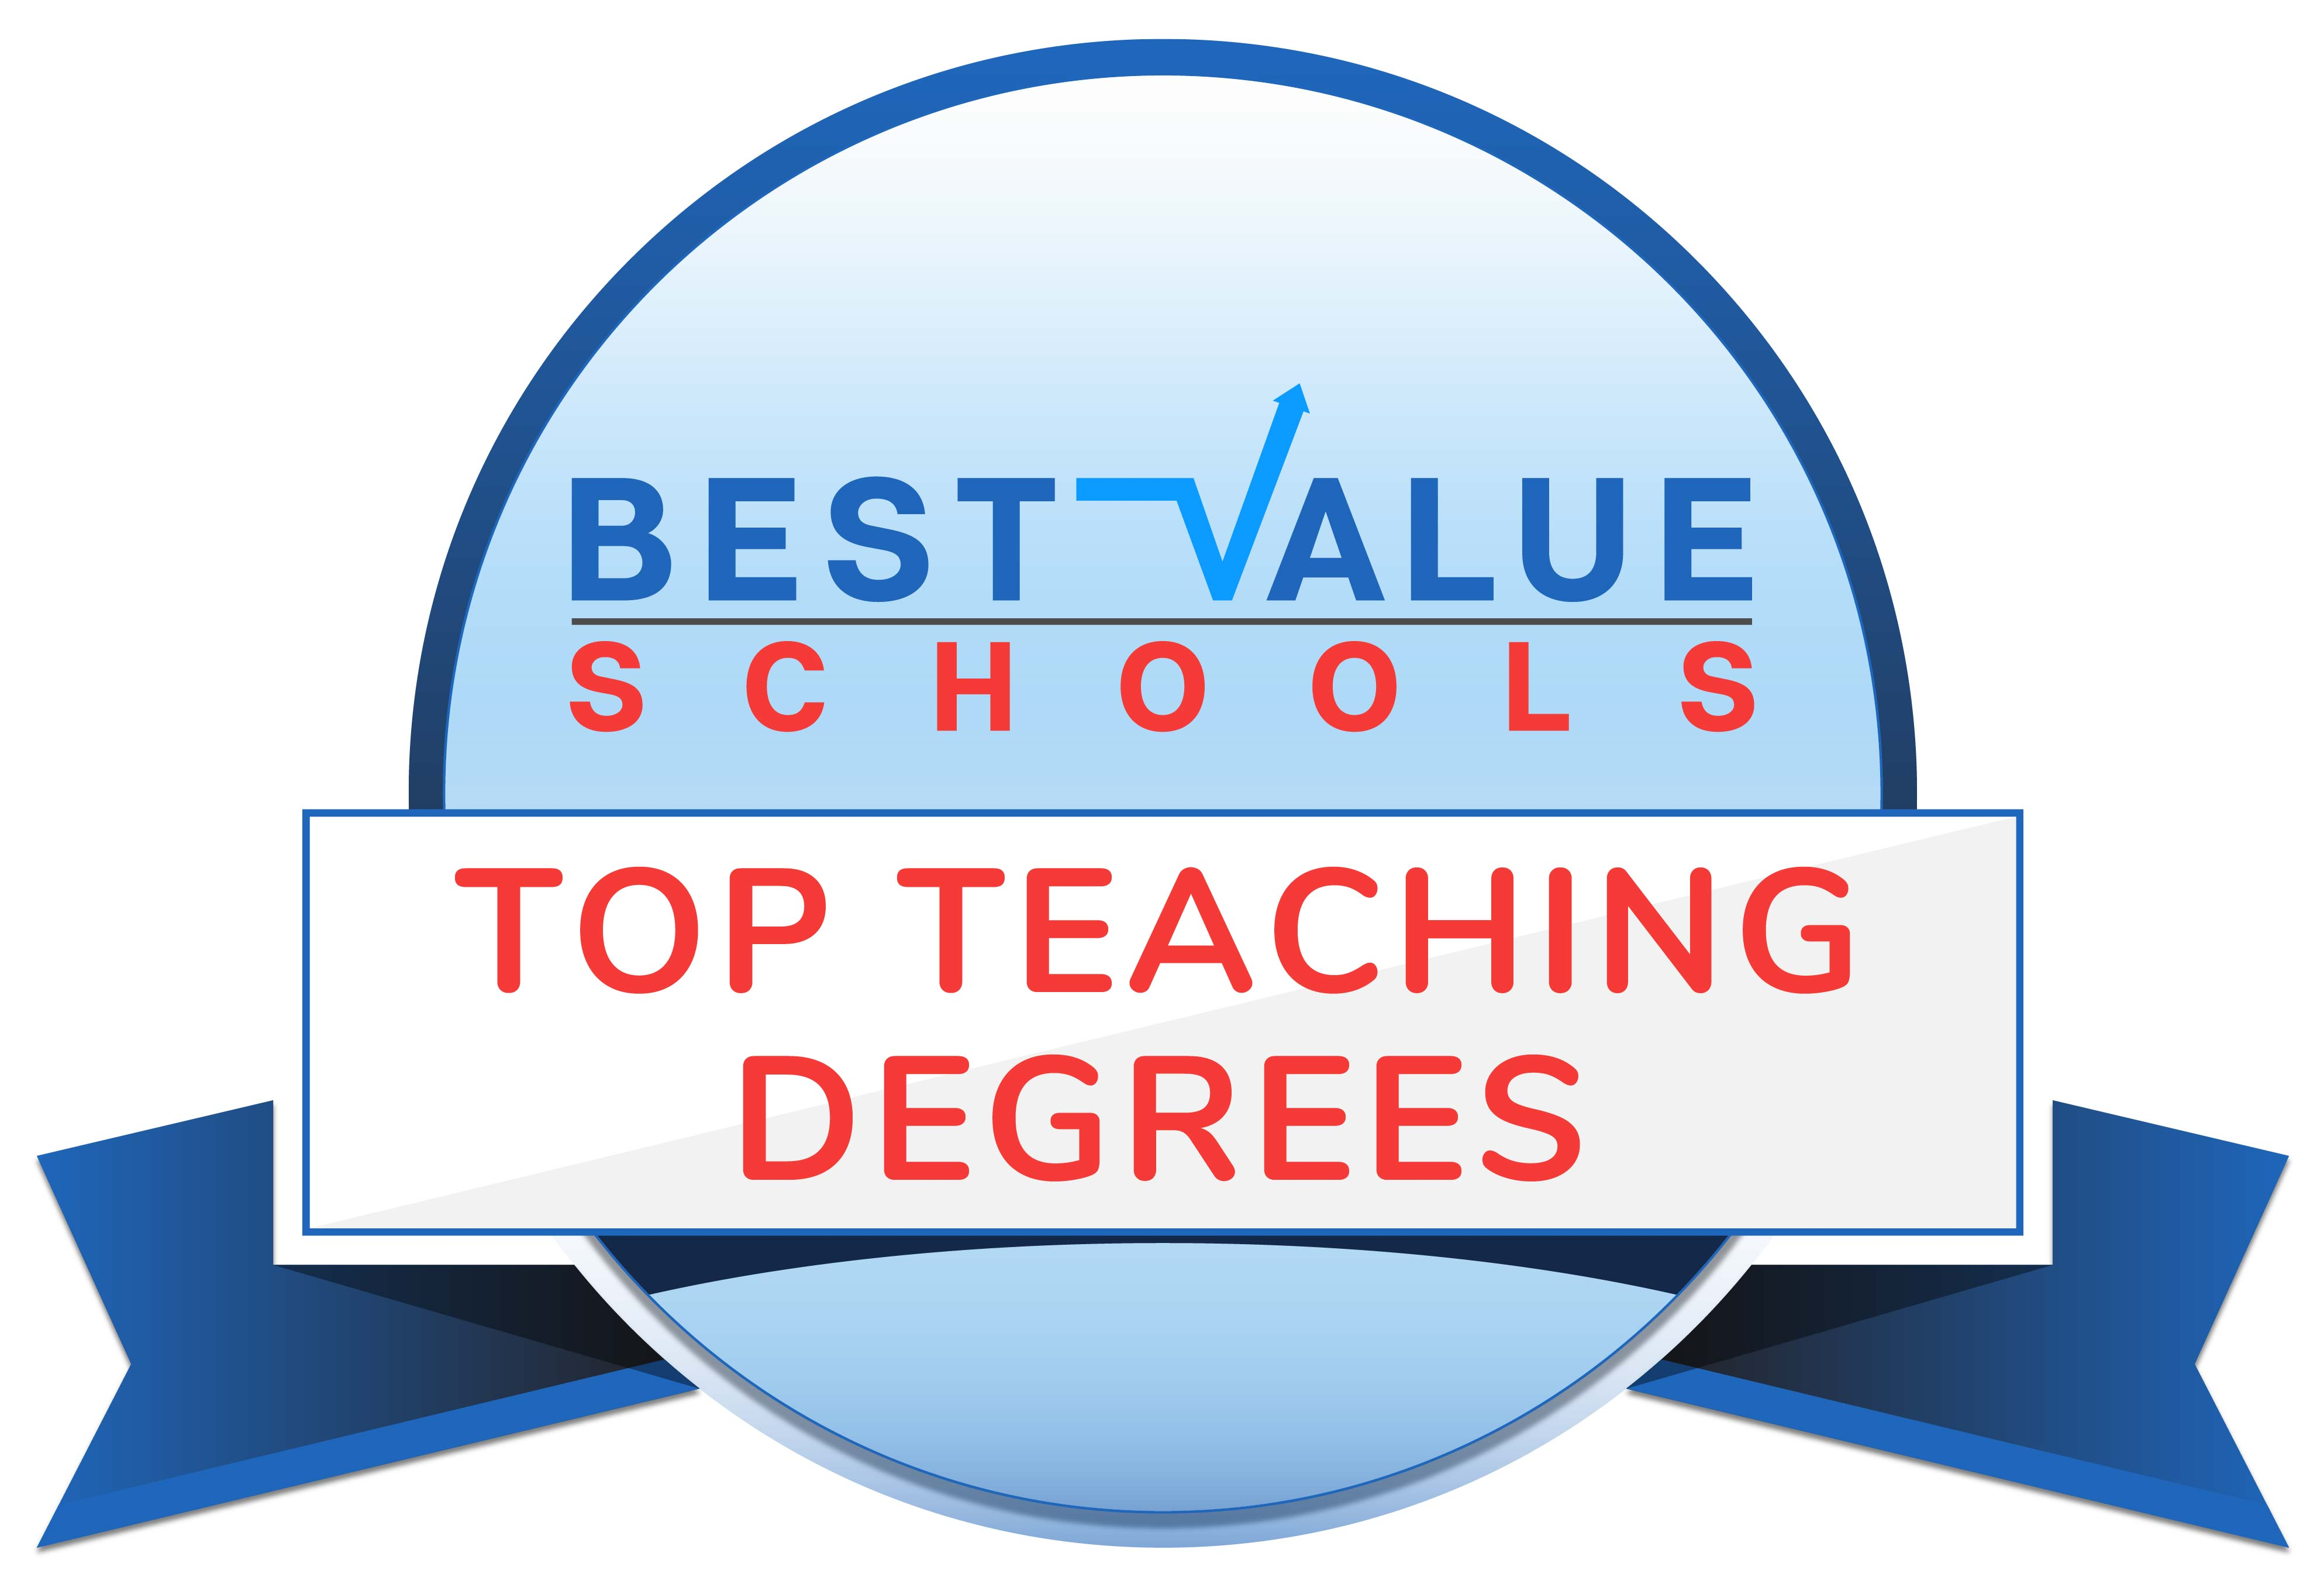 Best Value Schools The 50 Best Value Colleges For Teaching